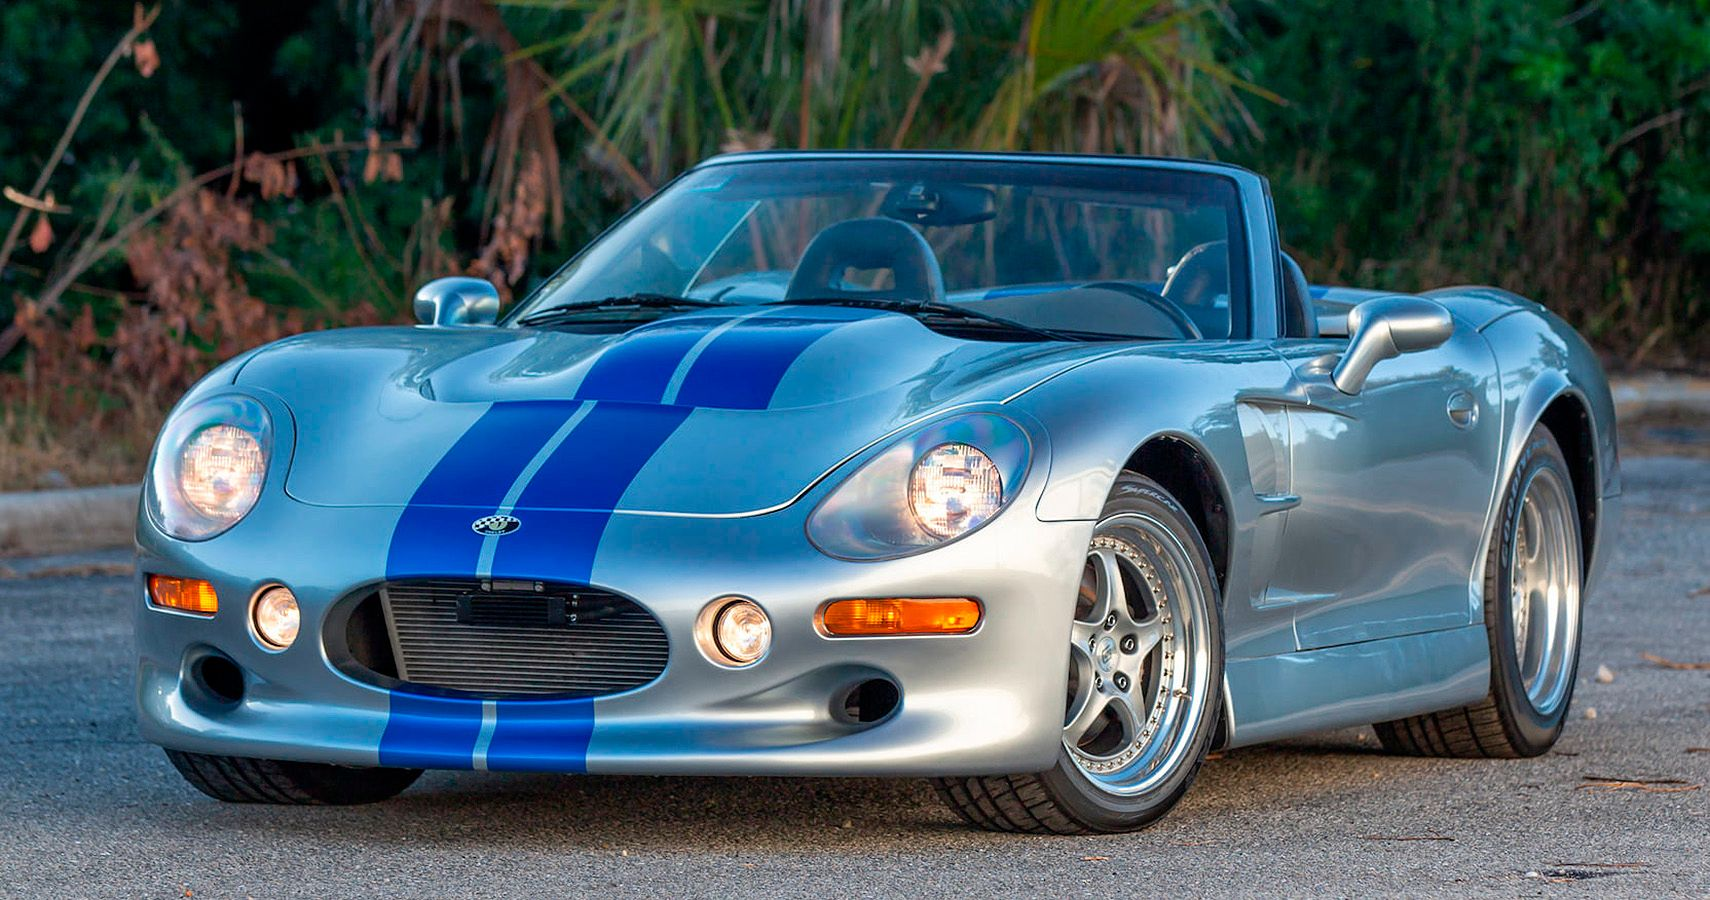 This Is What Makes A Shelby Series 1 Classic | HotCars